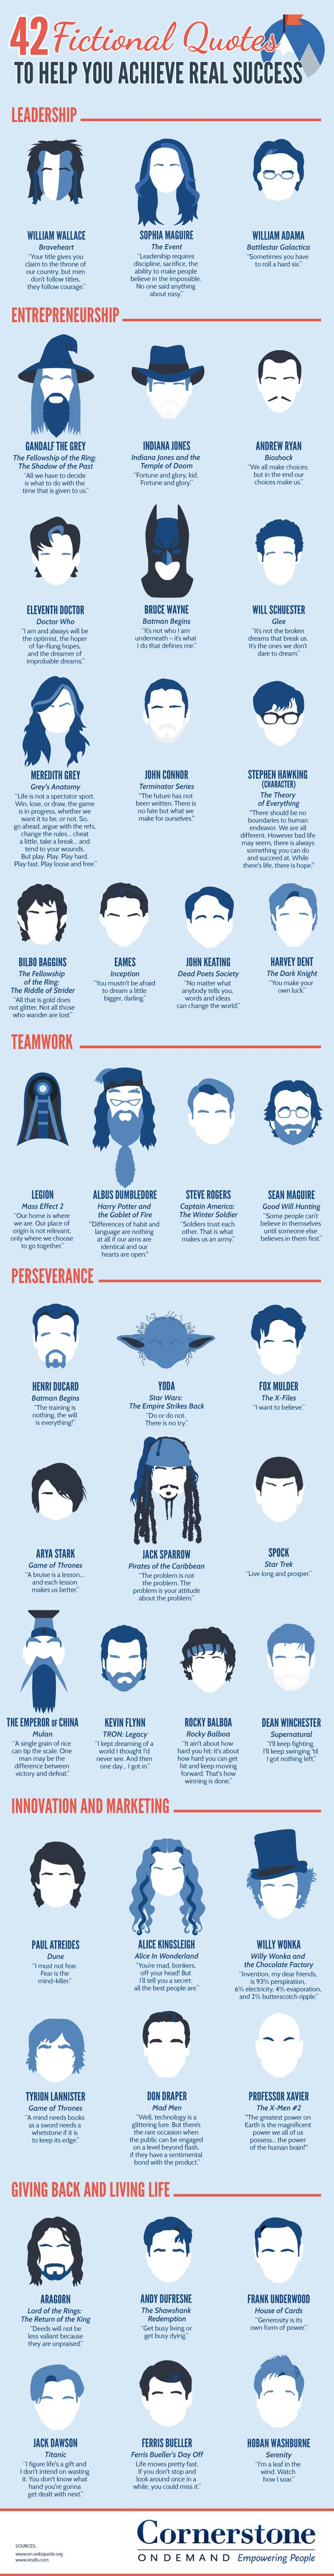 42 Fictional Quotes to Help You Achieve Real Success #infographic ~ Visualistan